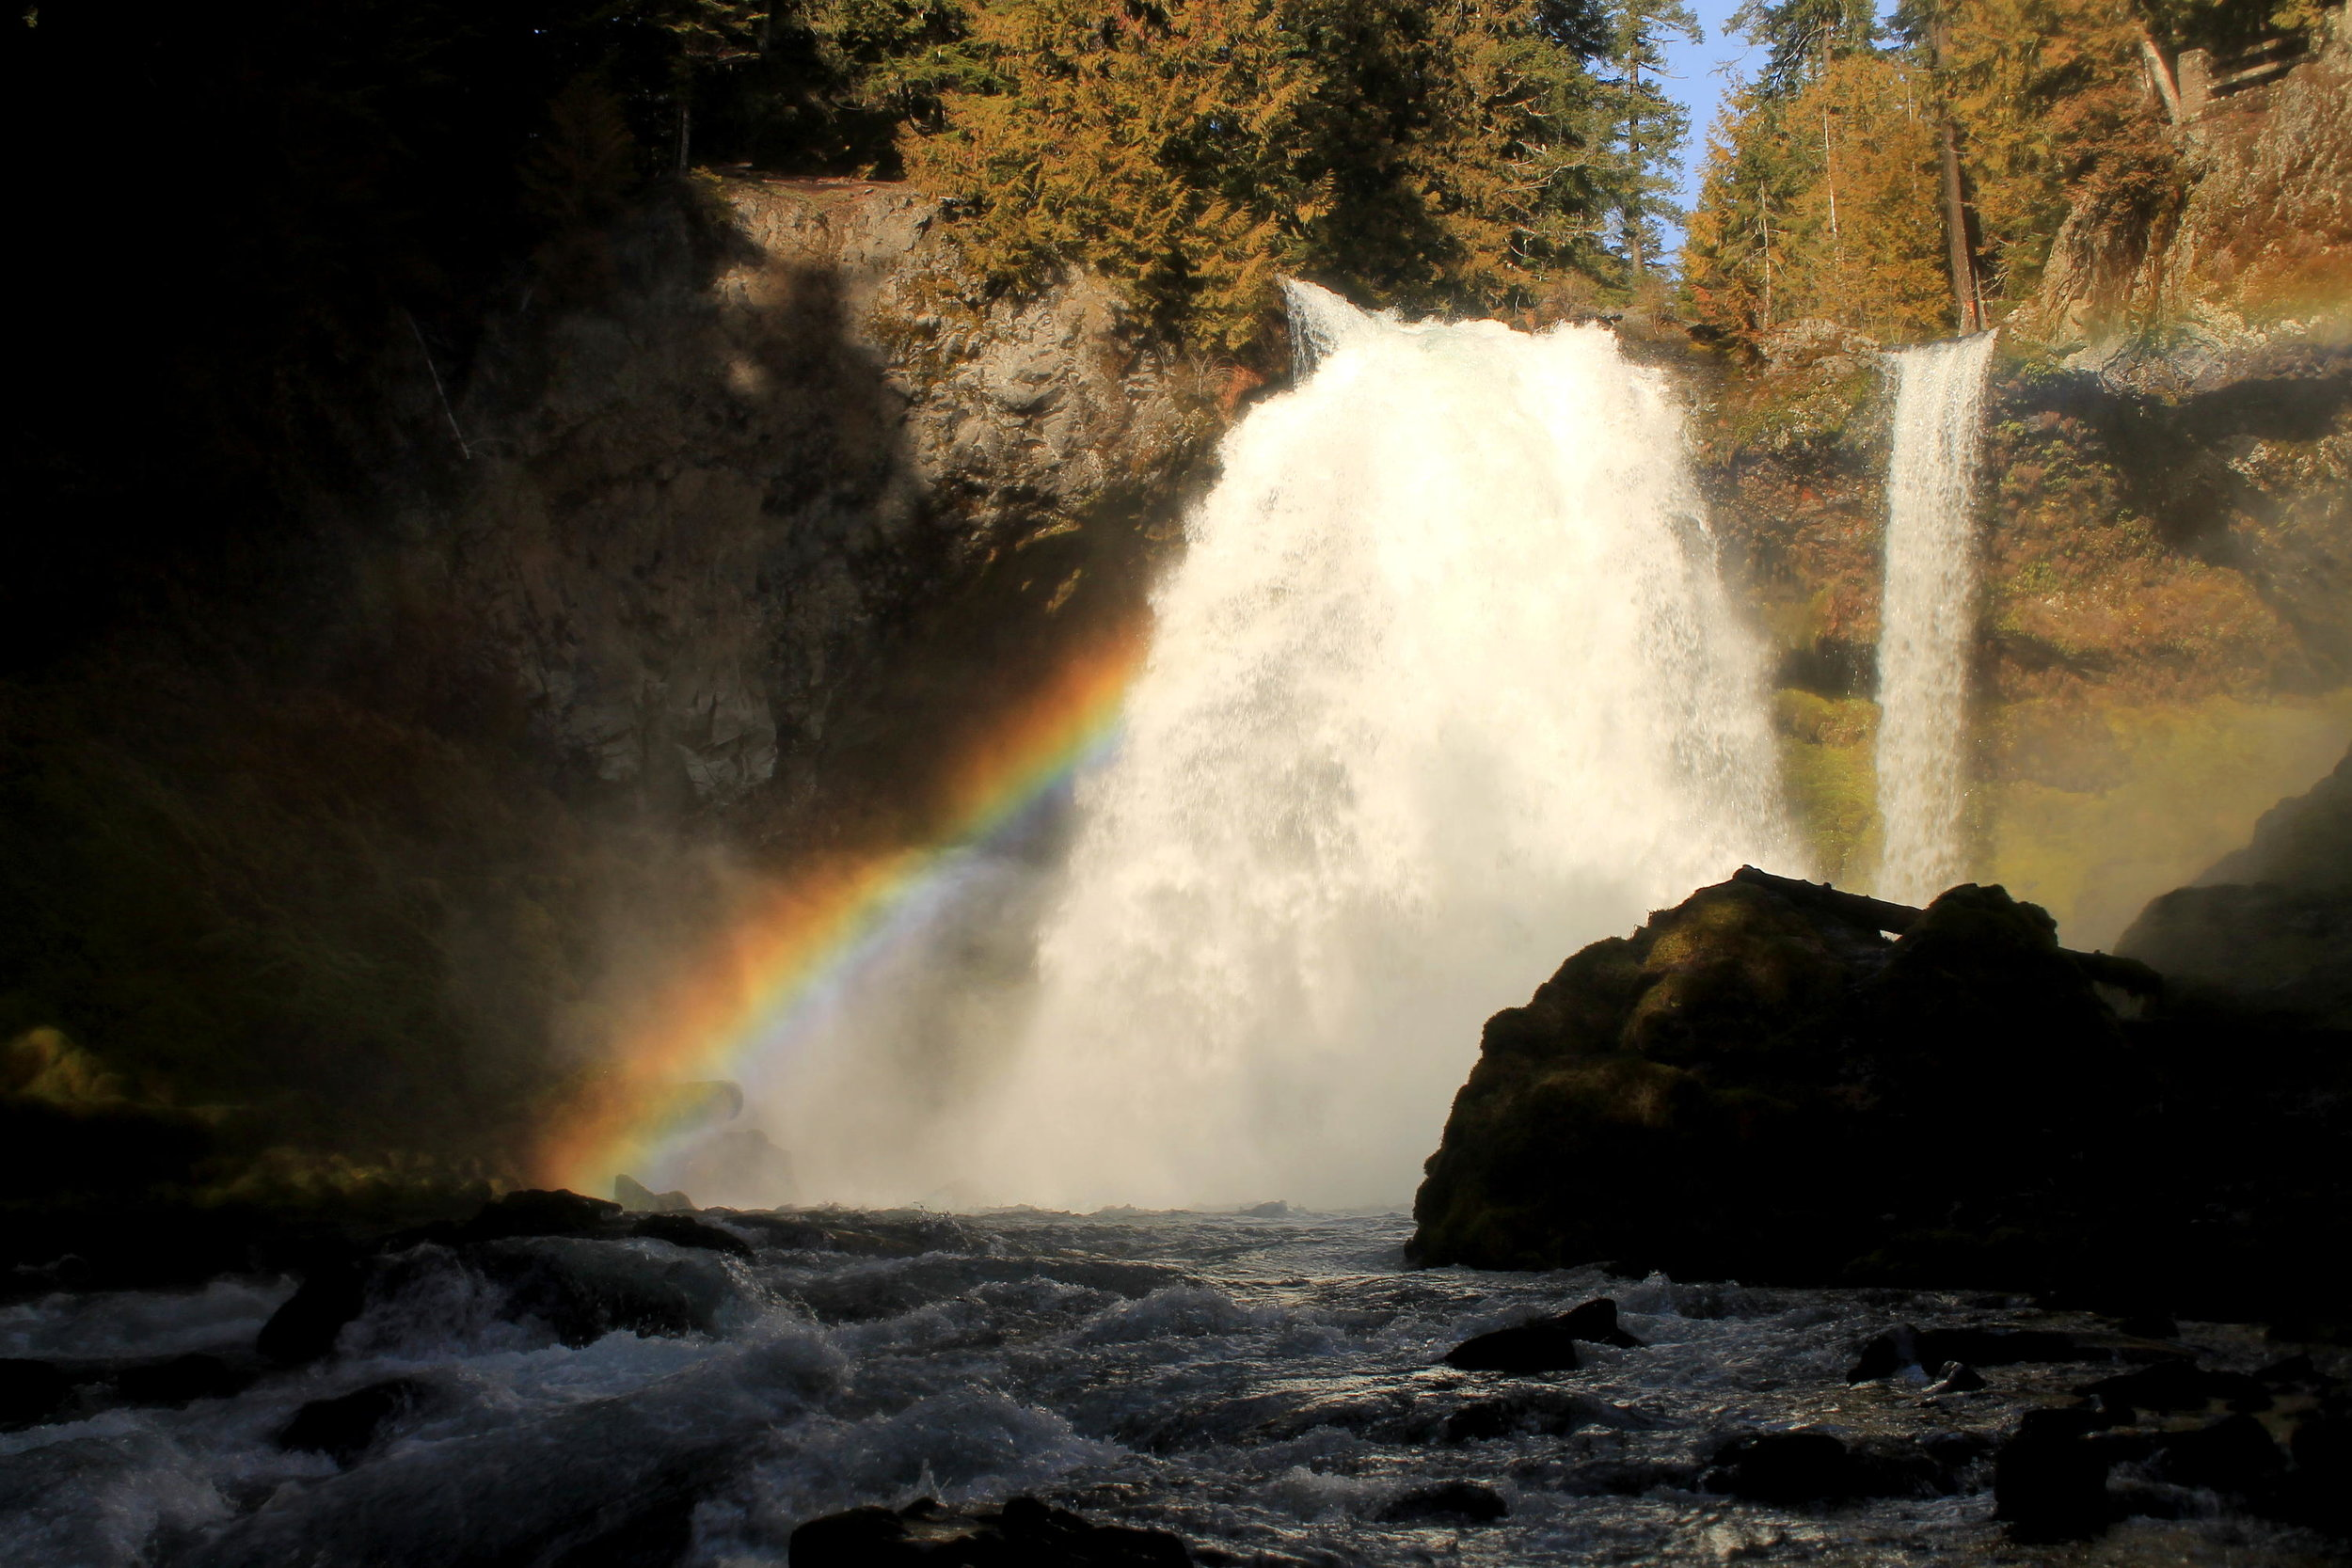 Rainbow over Sahalie Falls on the McKenzie River, January 2019. There's almost never a bad time to hike along the McKenzie River, but I particularly love coming here on sunny days in the winter when the crowds are gone and the rainbows are at their most intense.